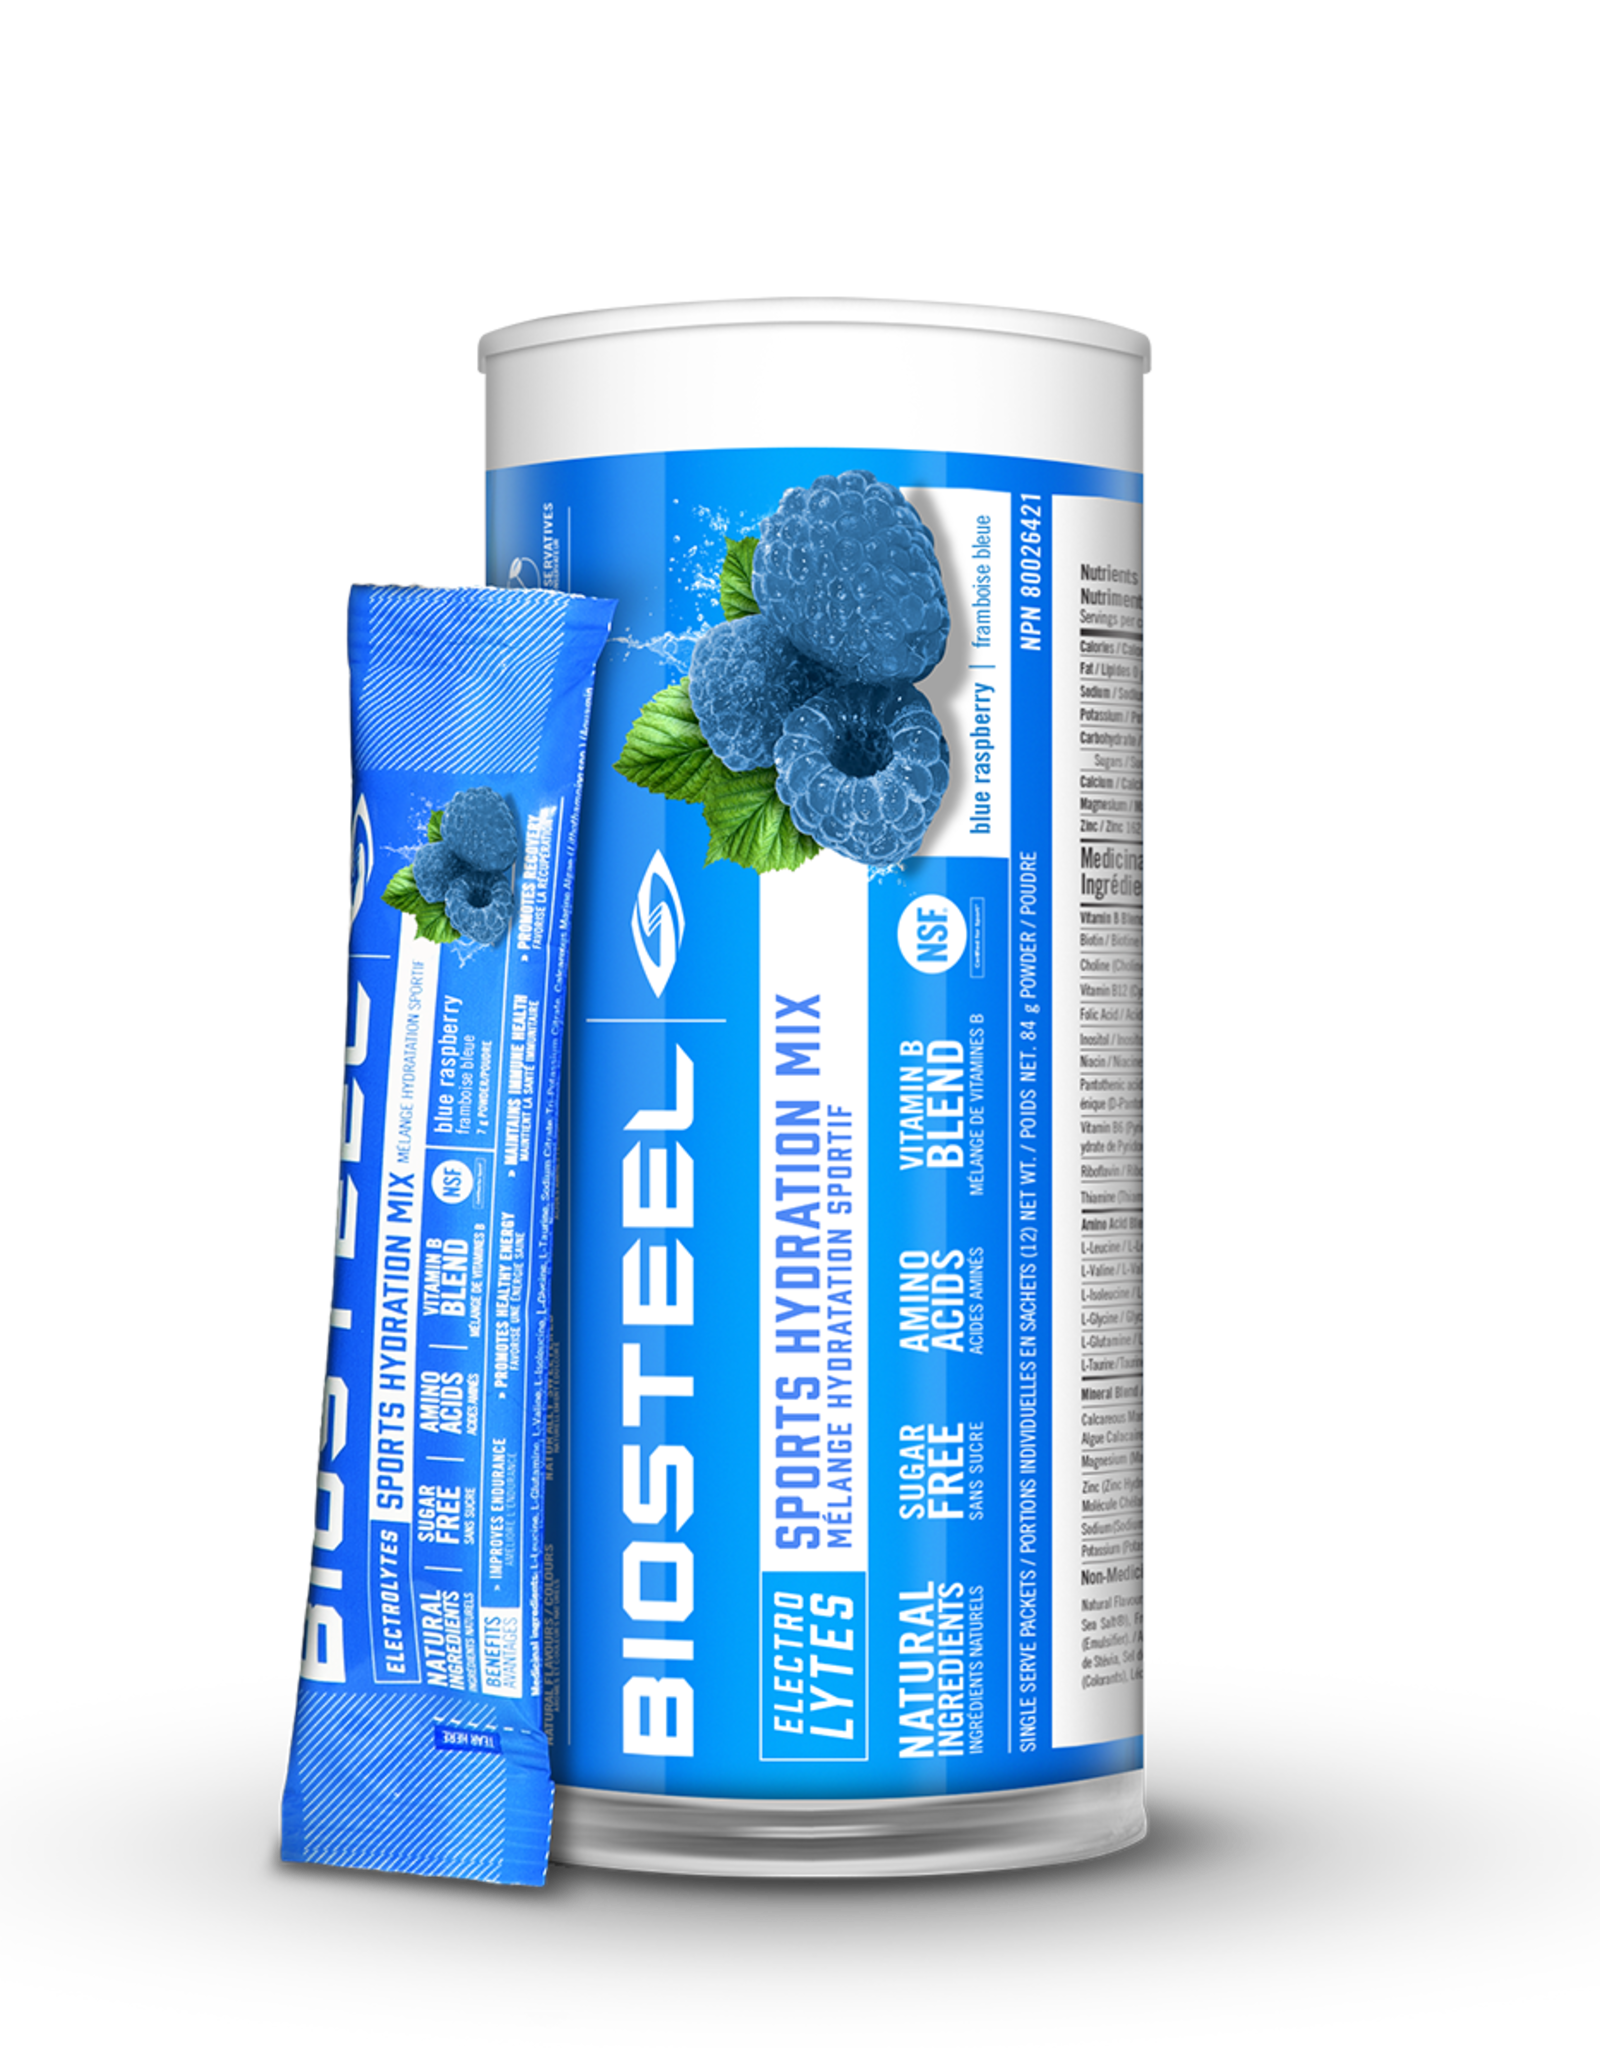 BIOSTEEL SPORTS HYDRATION - BLUE RASBERRY - 12 PACK